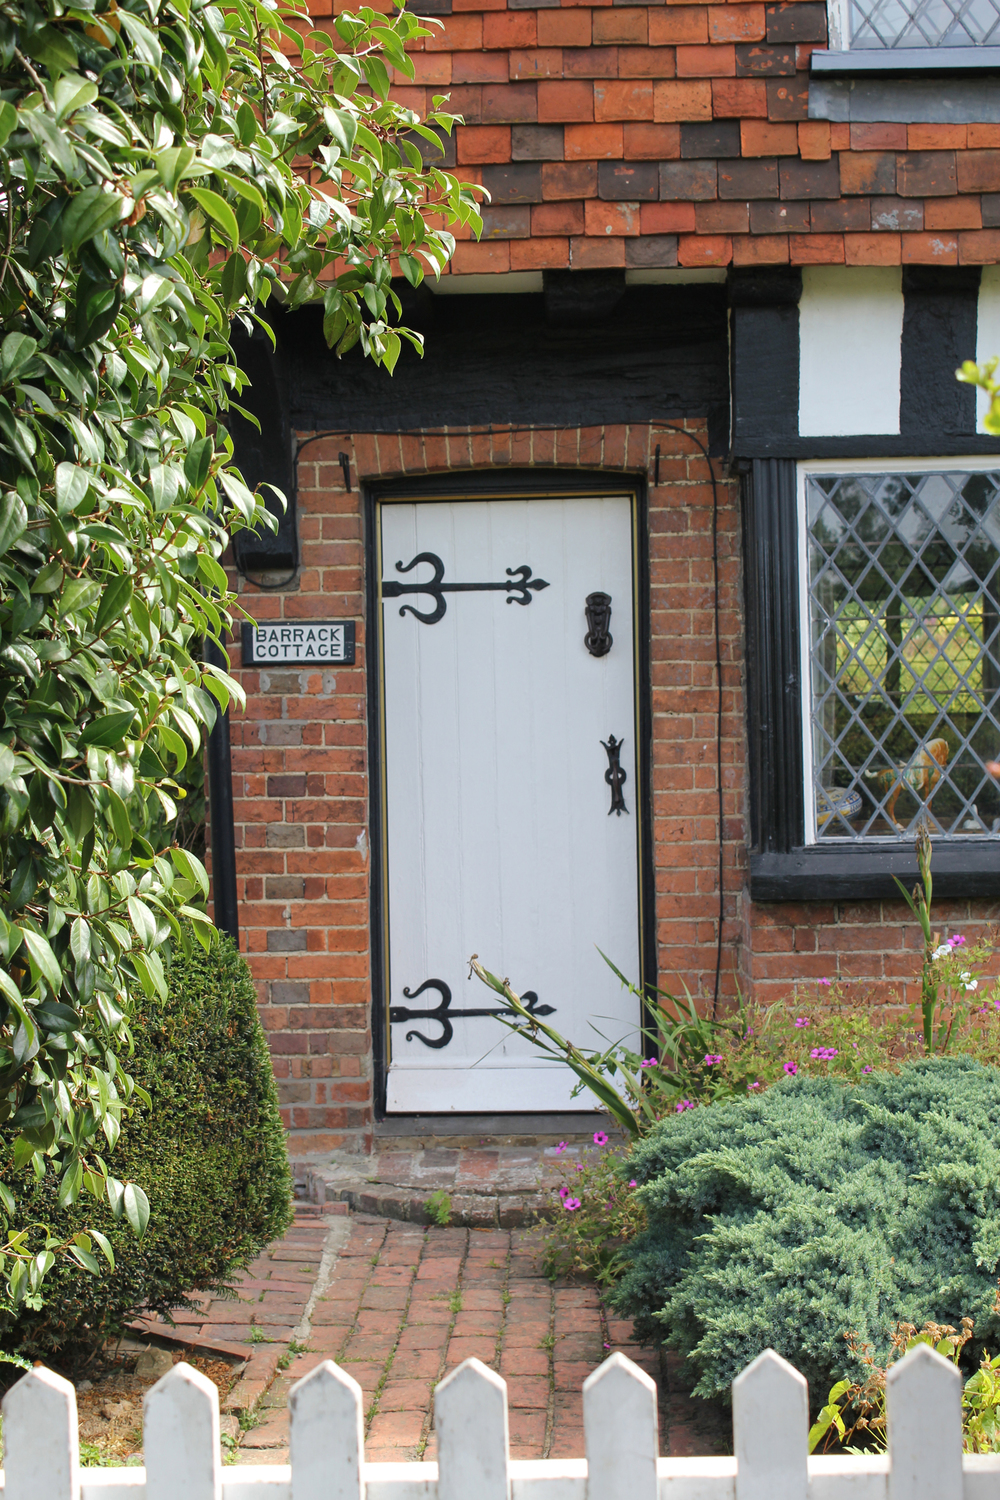 Barack Cottage with iron hinges and door furniture